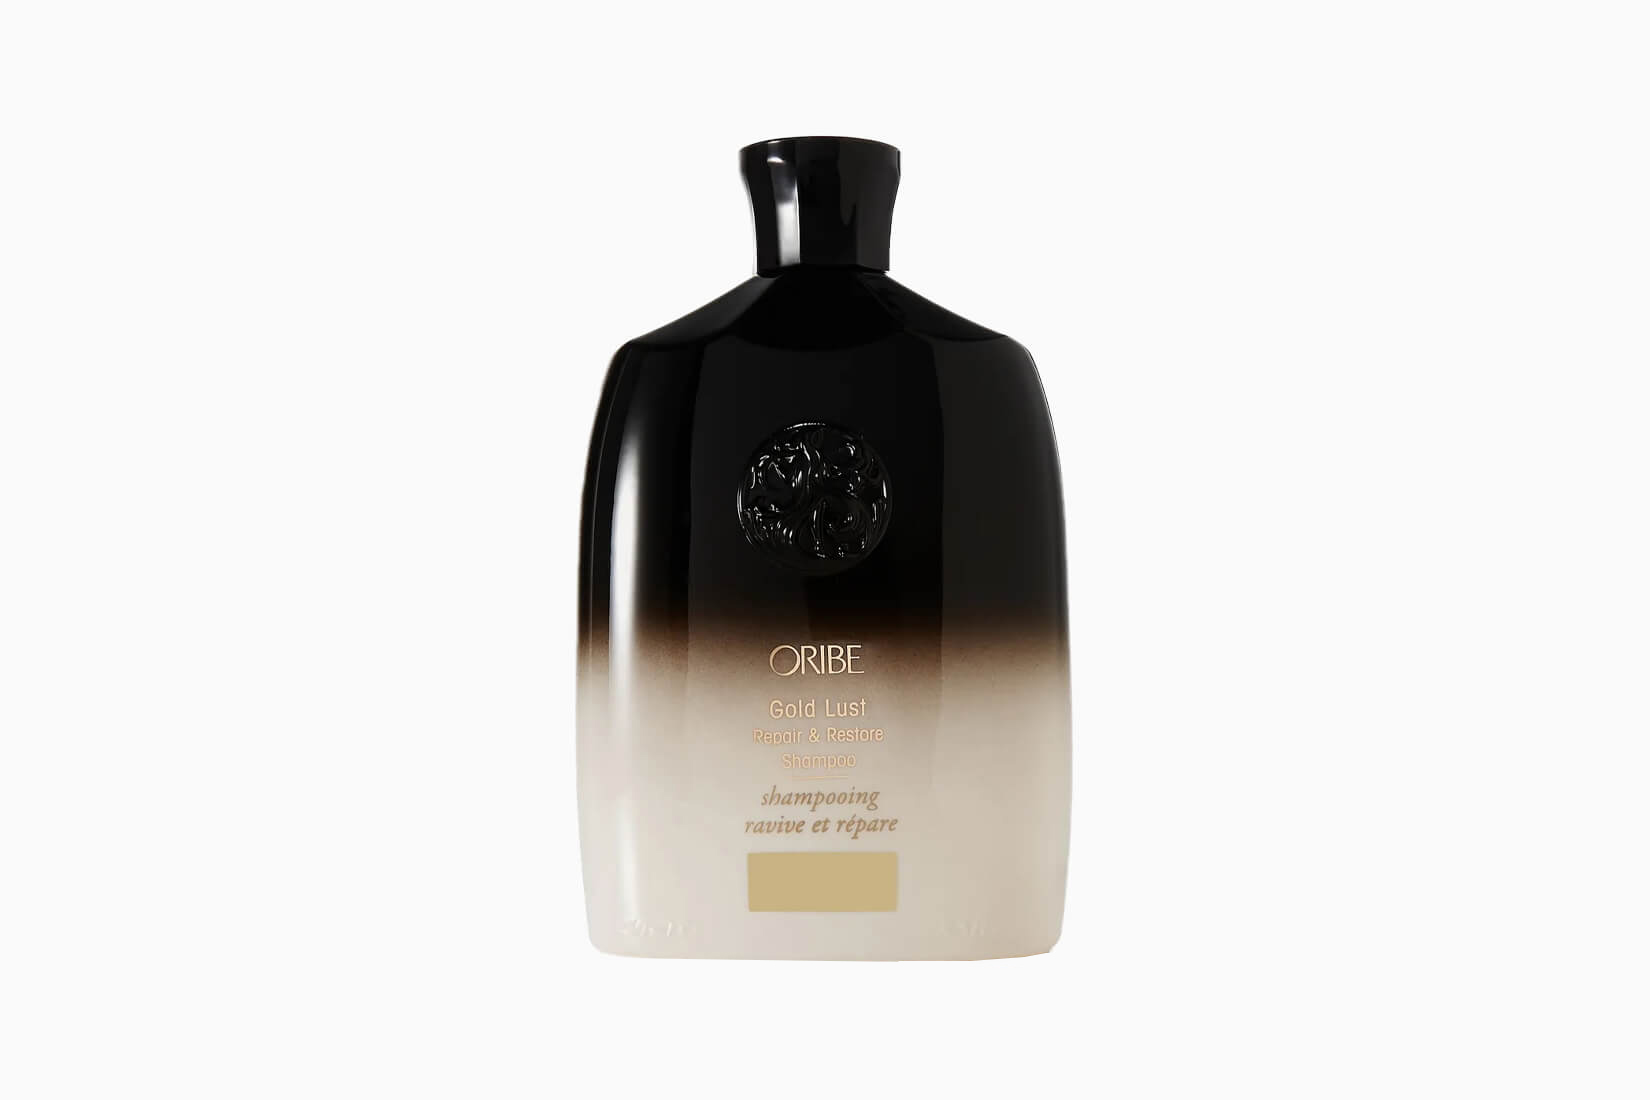 best hair growth shampoo women oribe review - Luxe Digital